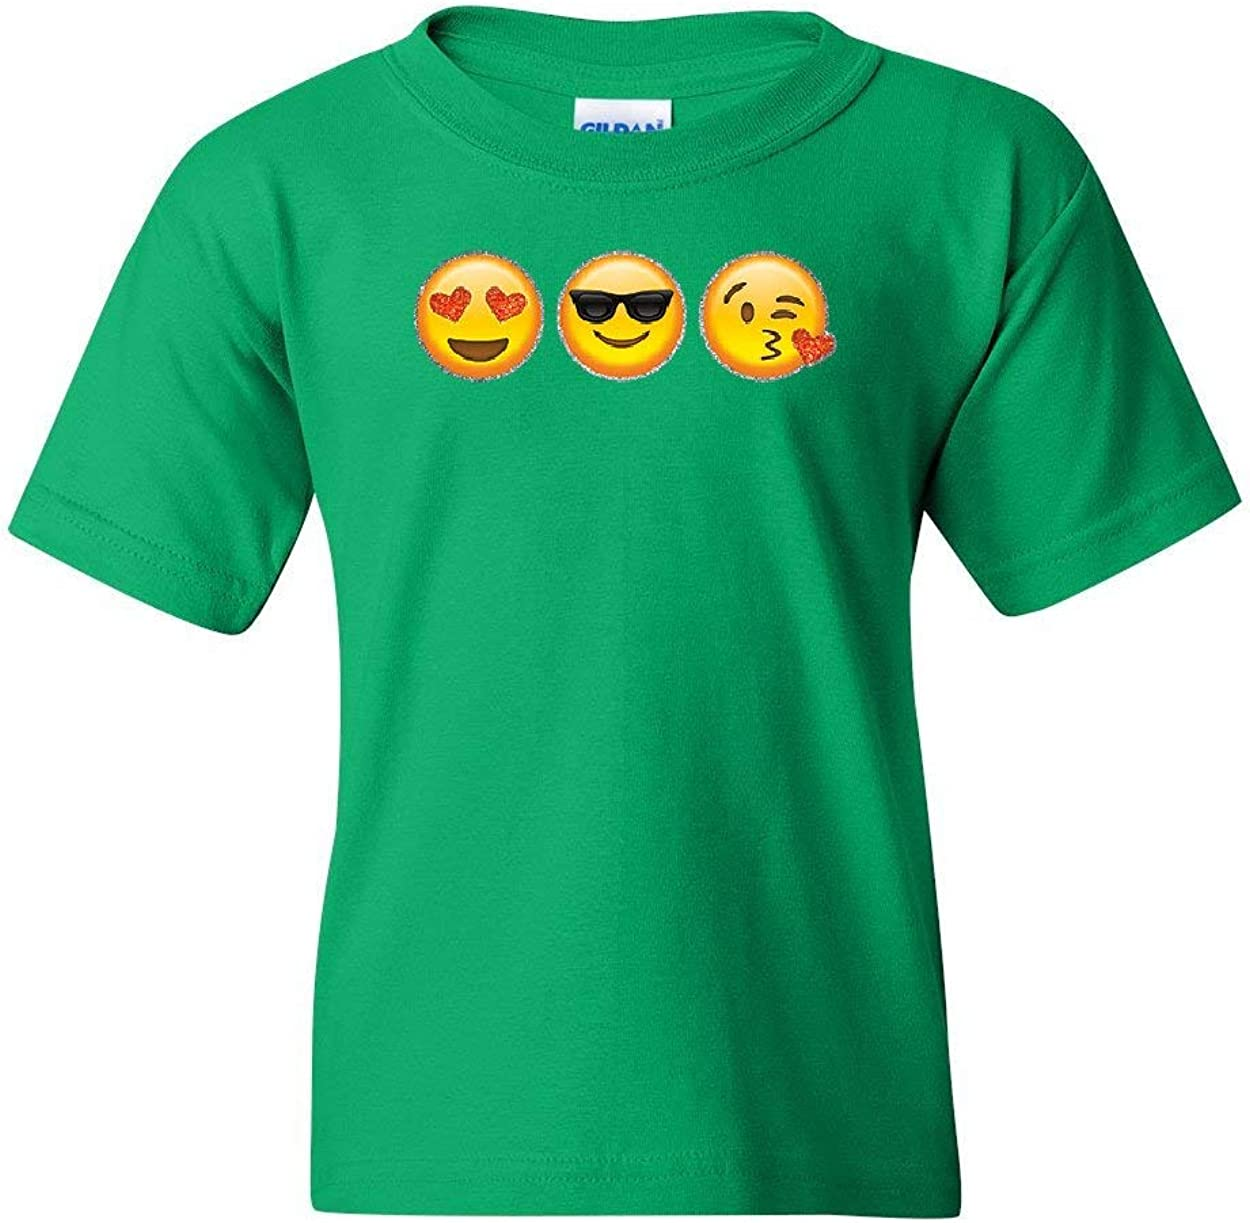 3 Emoji Faces Youth T-Shirt Funny Cute Glitter Smiley Face Pop Culture Kids Tee